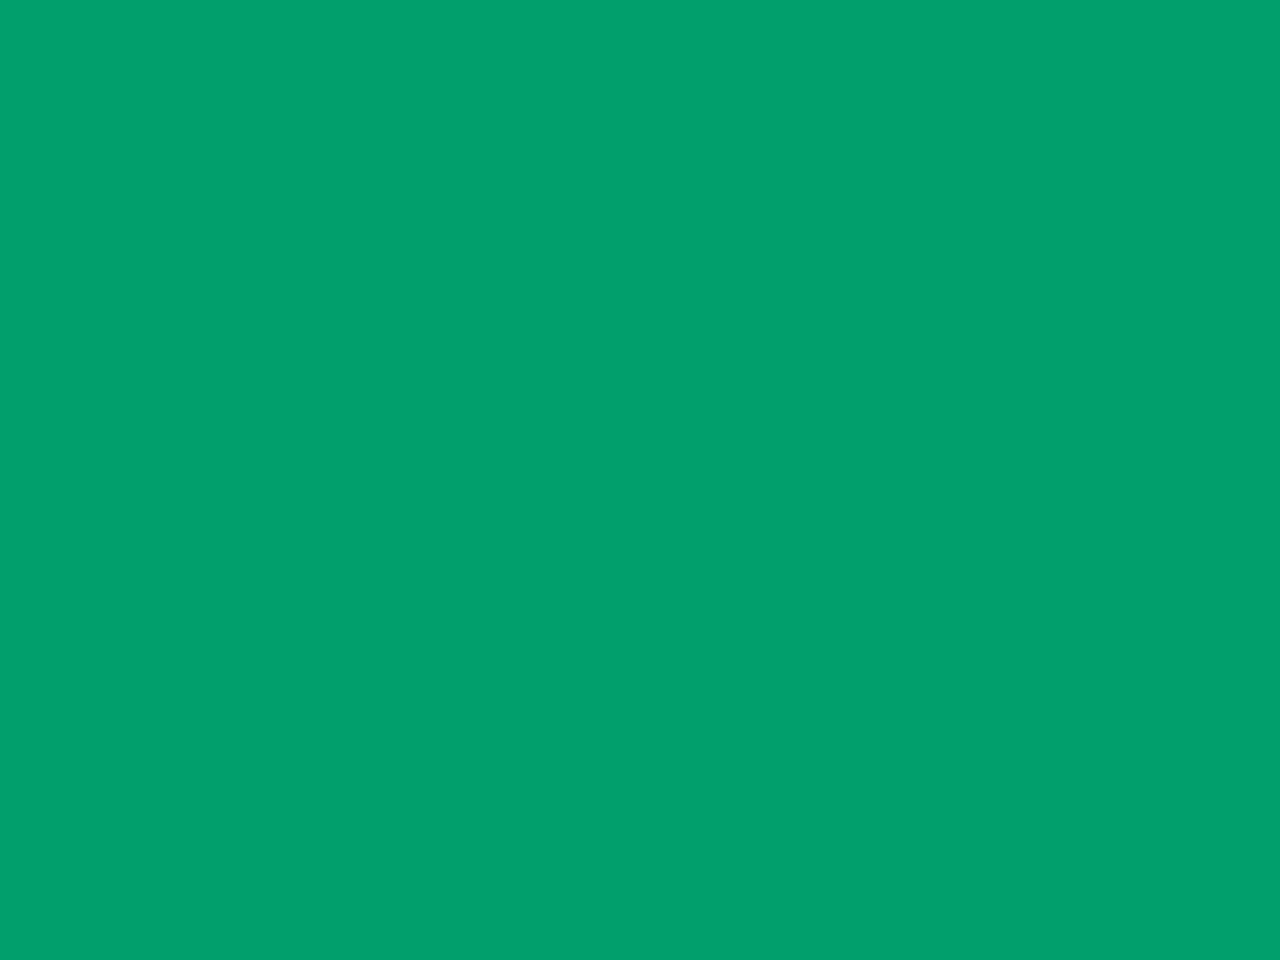 1280x960 Green NCS Solid Color Background